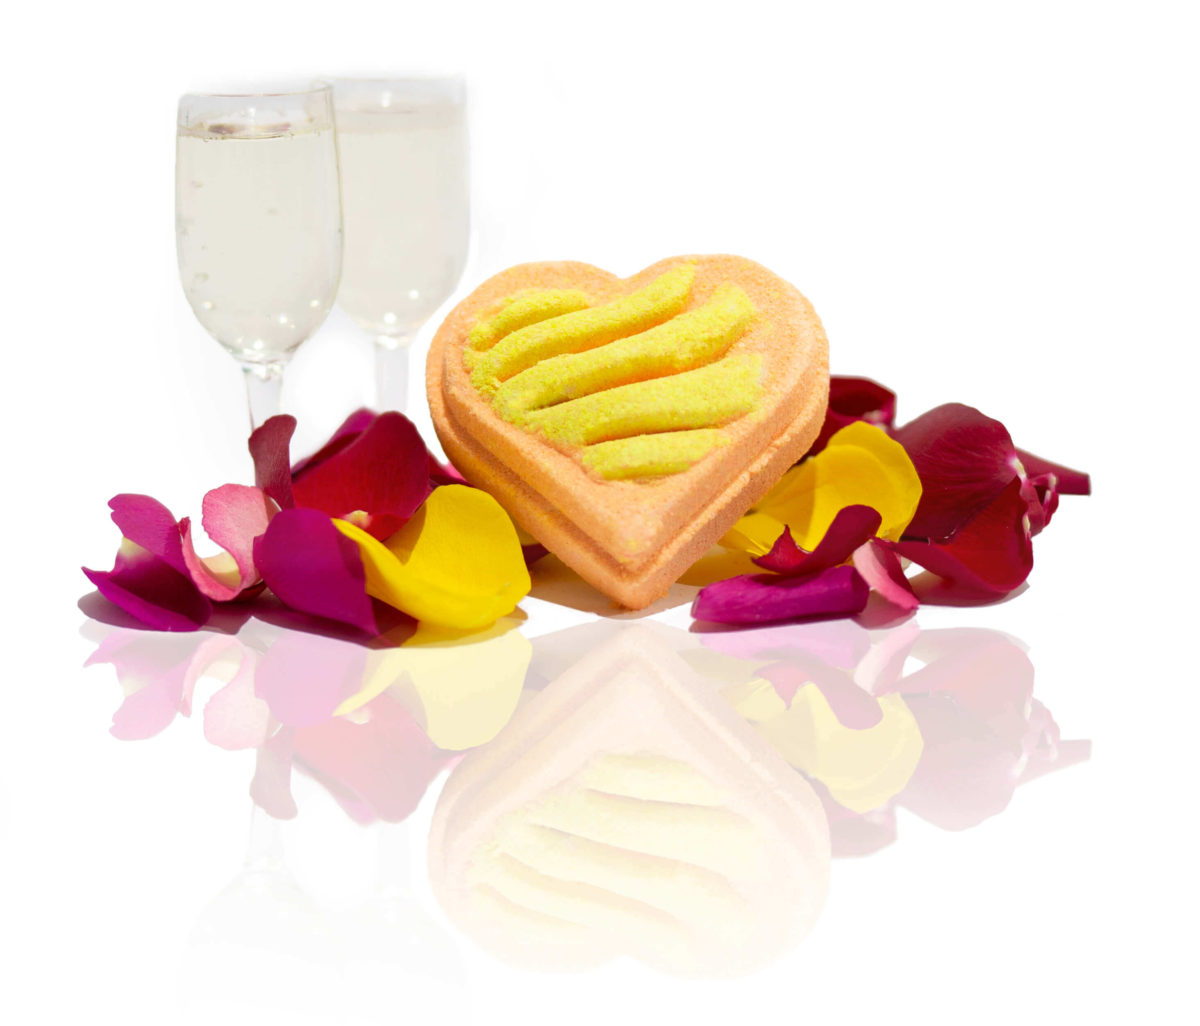 Gold & Orange love heart bath bomb with a wavy pattern on top in the centre of the screen surrounded by rose petals and champagne.